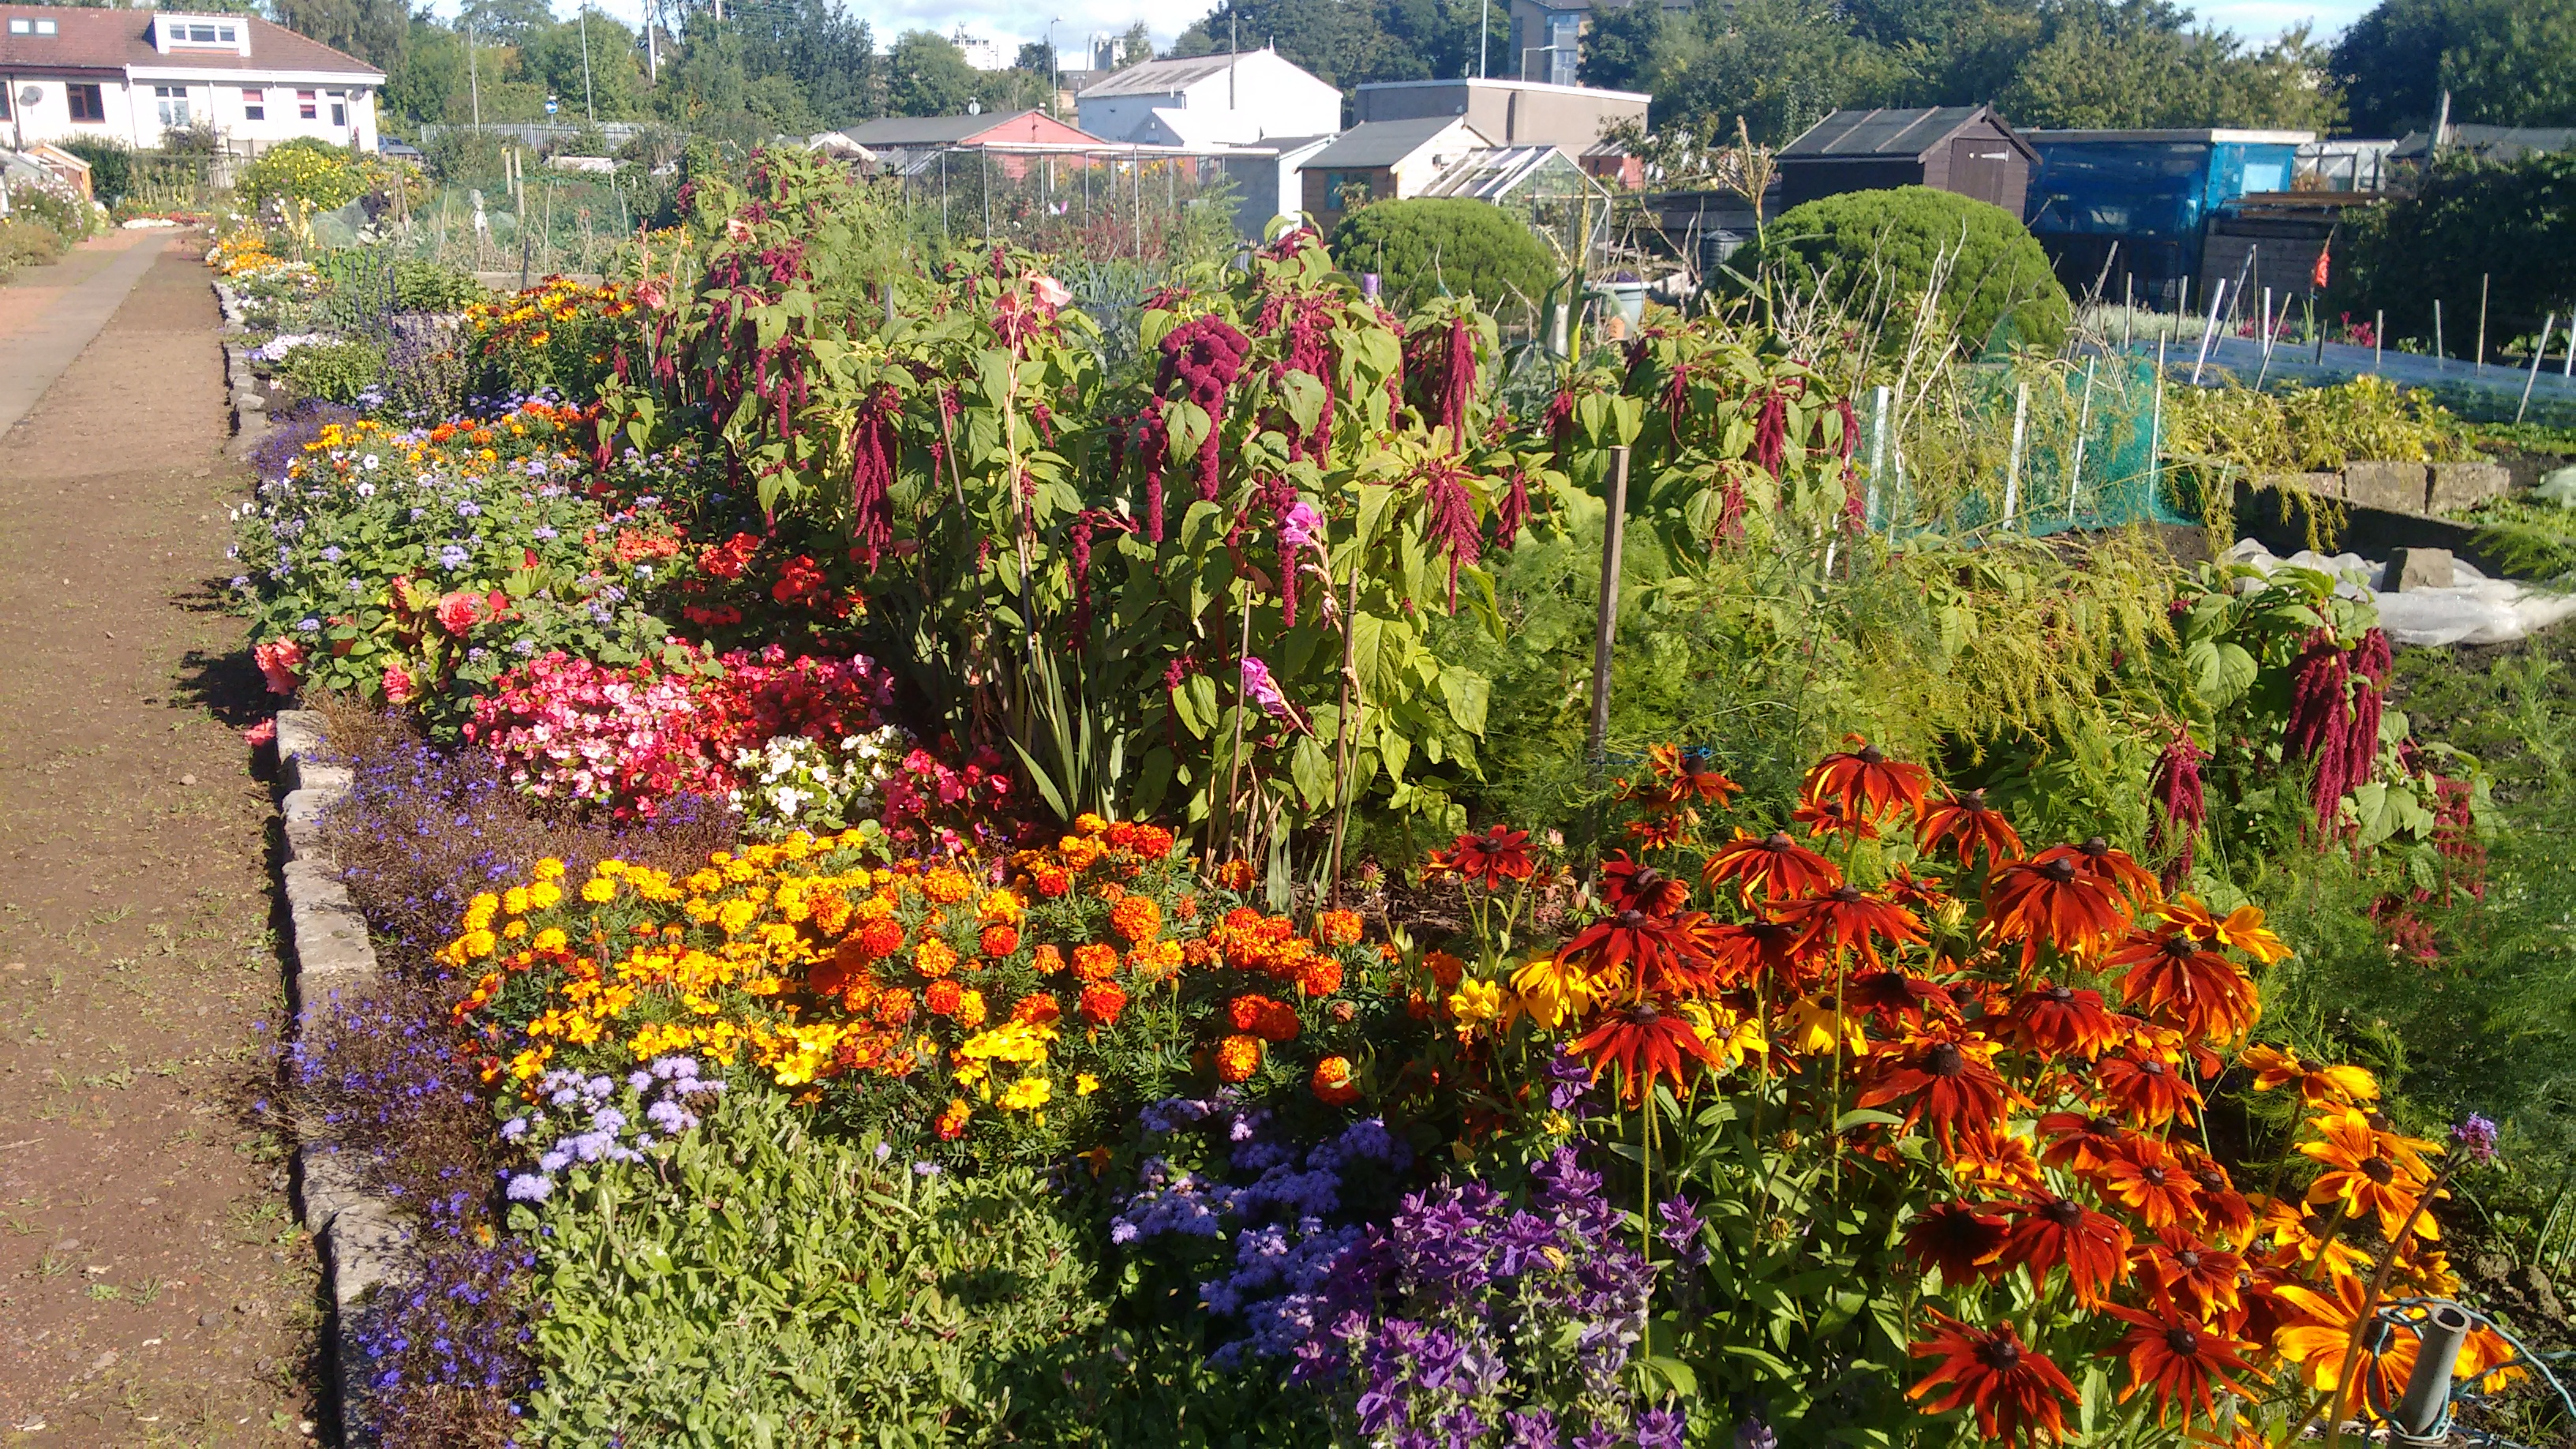 Berridale Allotments and Gardens